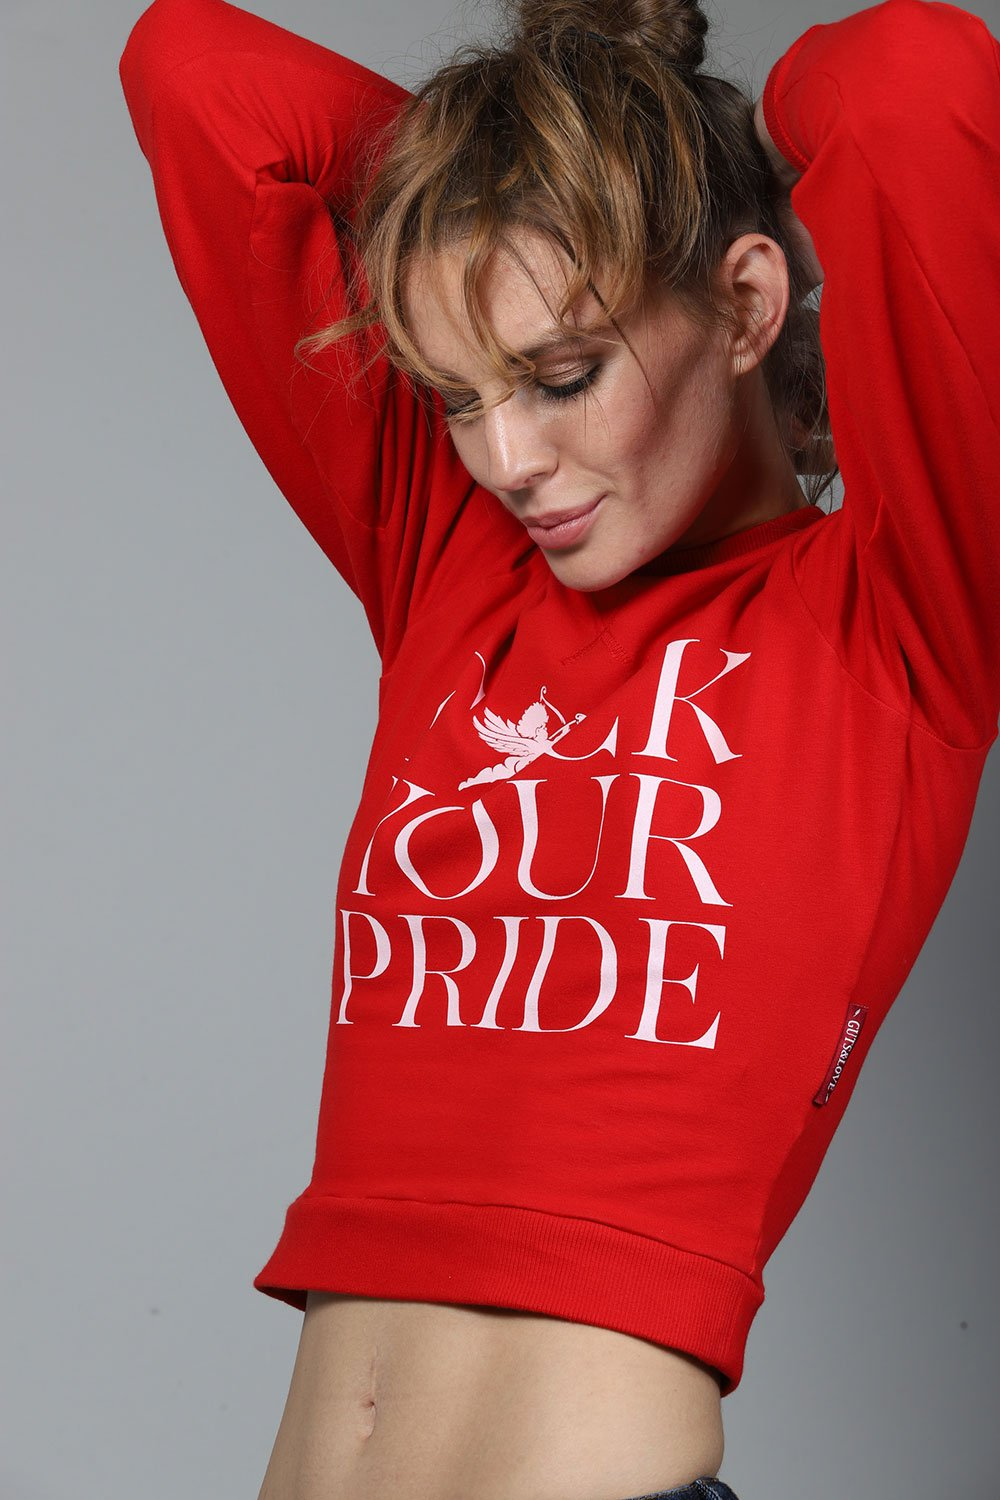 Sudadera F*CK YOUR PRIDE SWEATSHIRT de la colección Touché de Guts and love